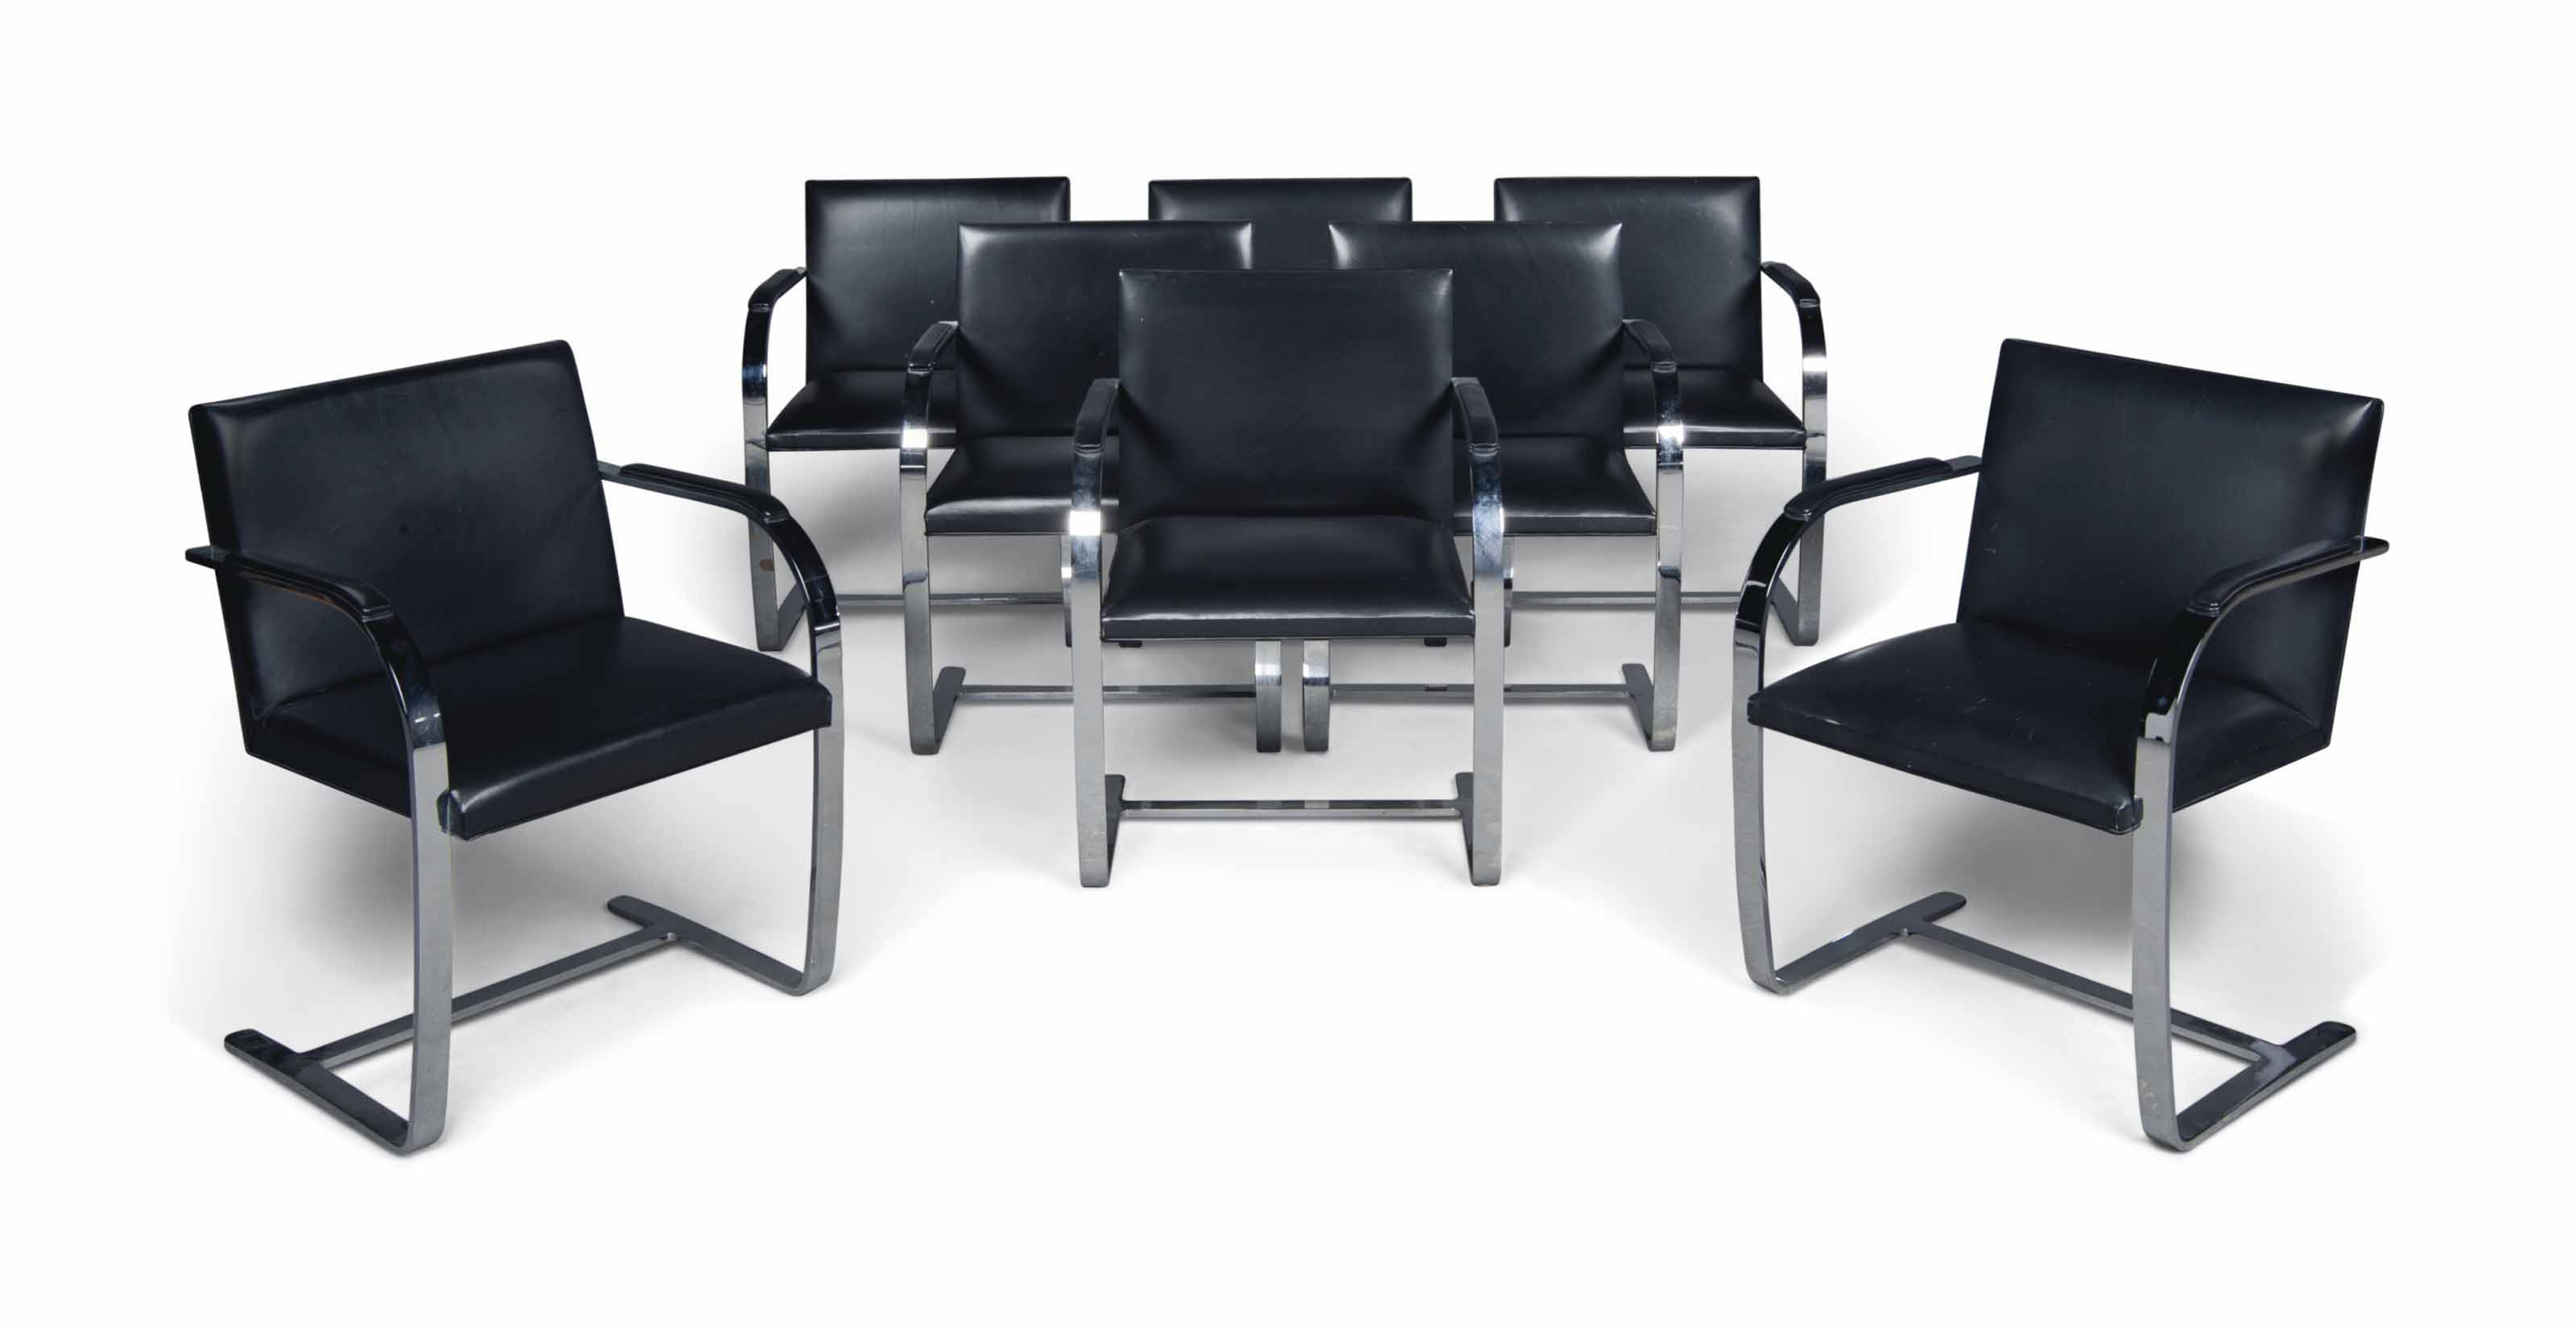 A SET OF EIGHT LUDWIG MIES VAN DER ROHE (1886-1969) CHROMIUM-PLATED STEEL AND LEATHER 'BRNO' CHAIRS